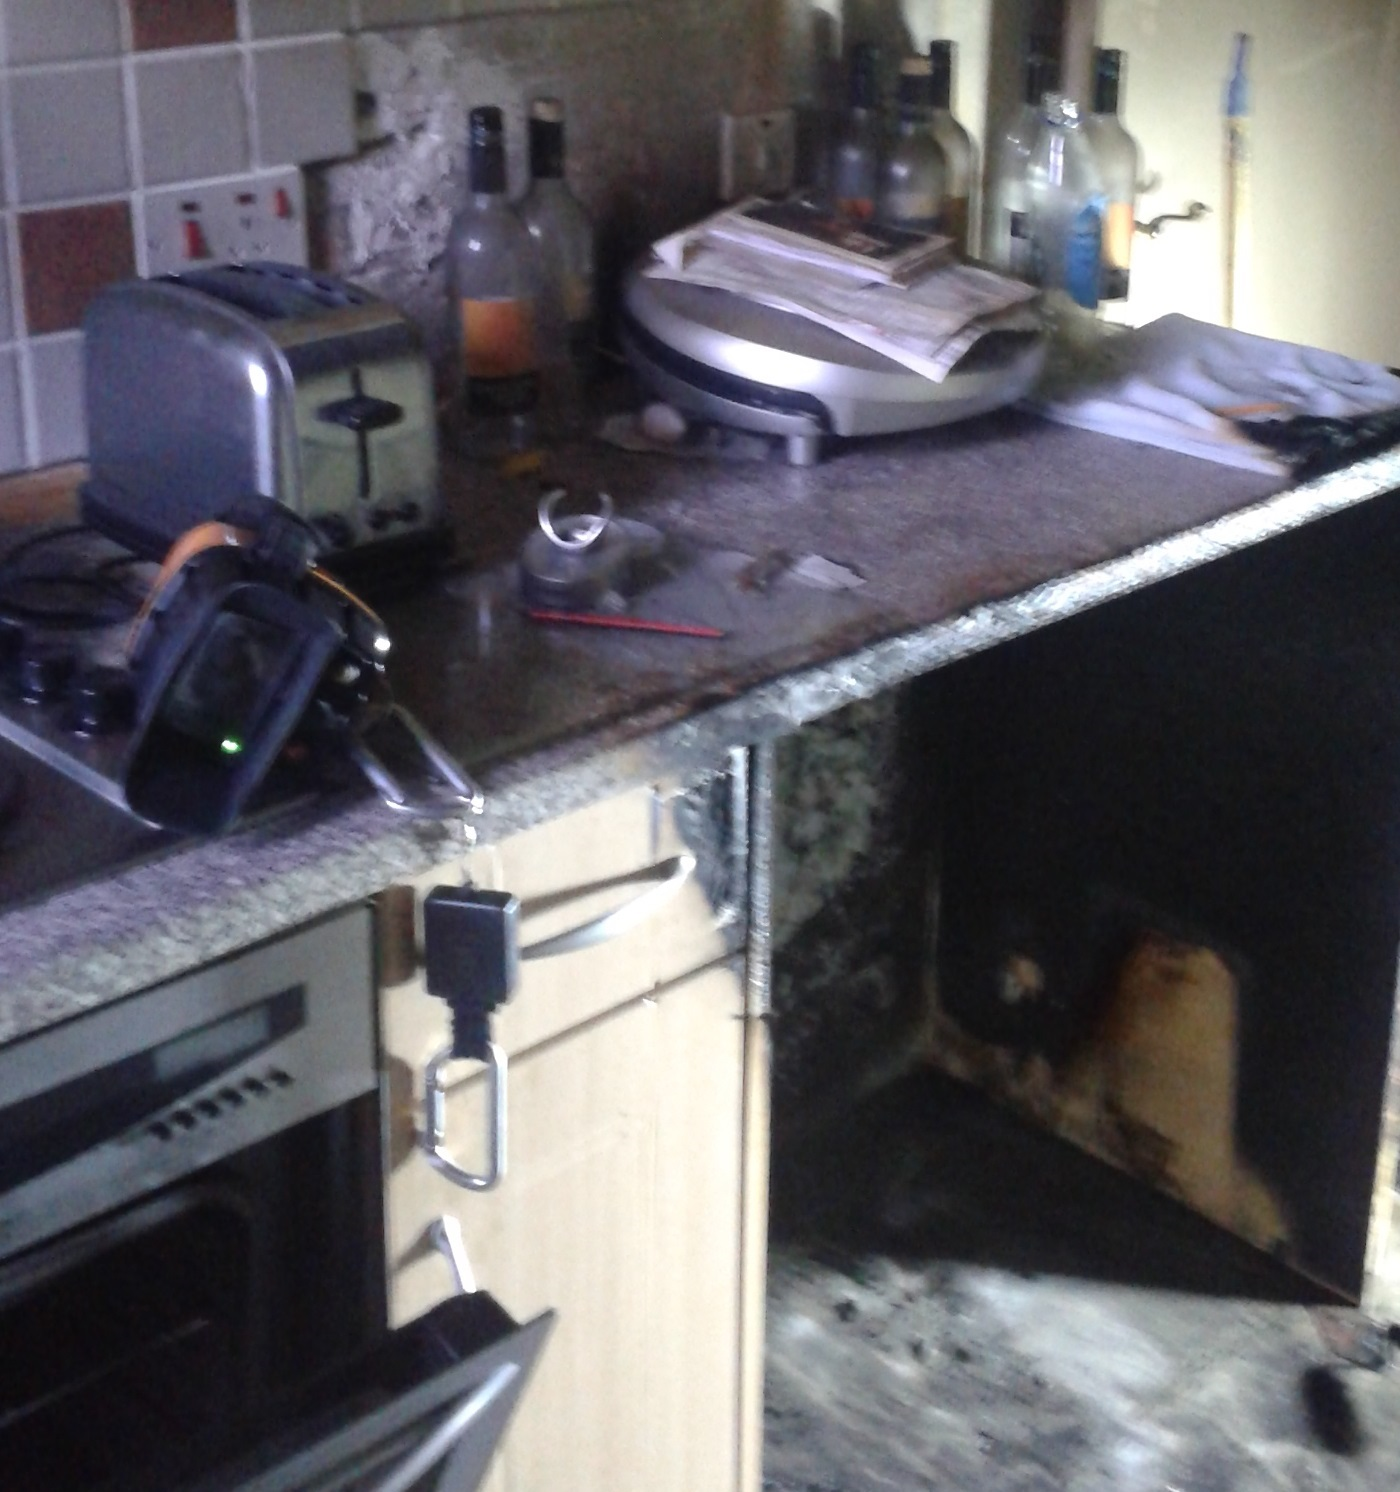 Crews attend kitchen fire in Alloa